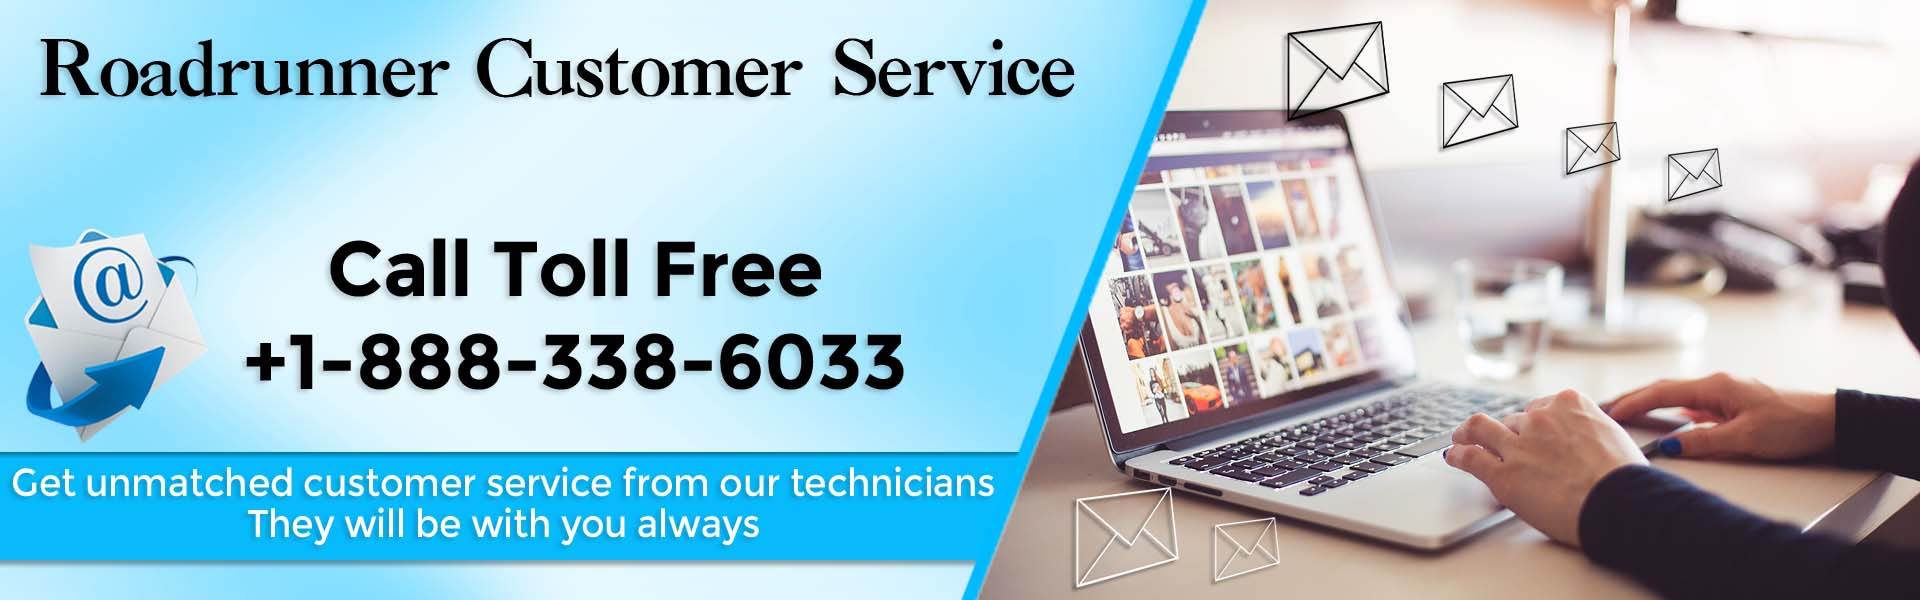 Roadrunner Customer Service Number